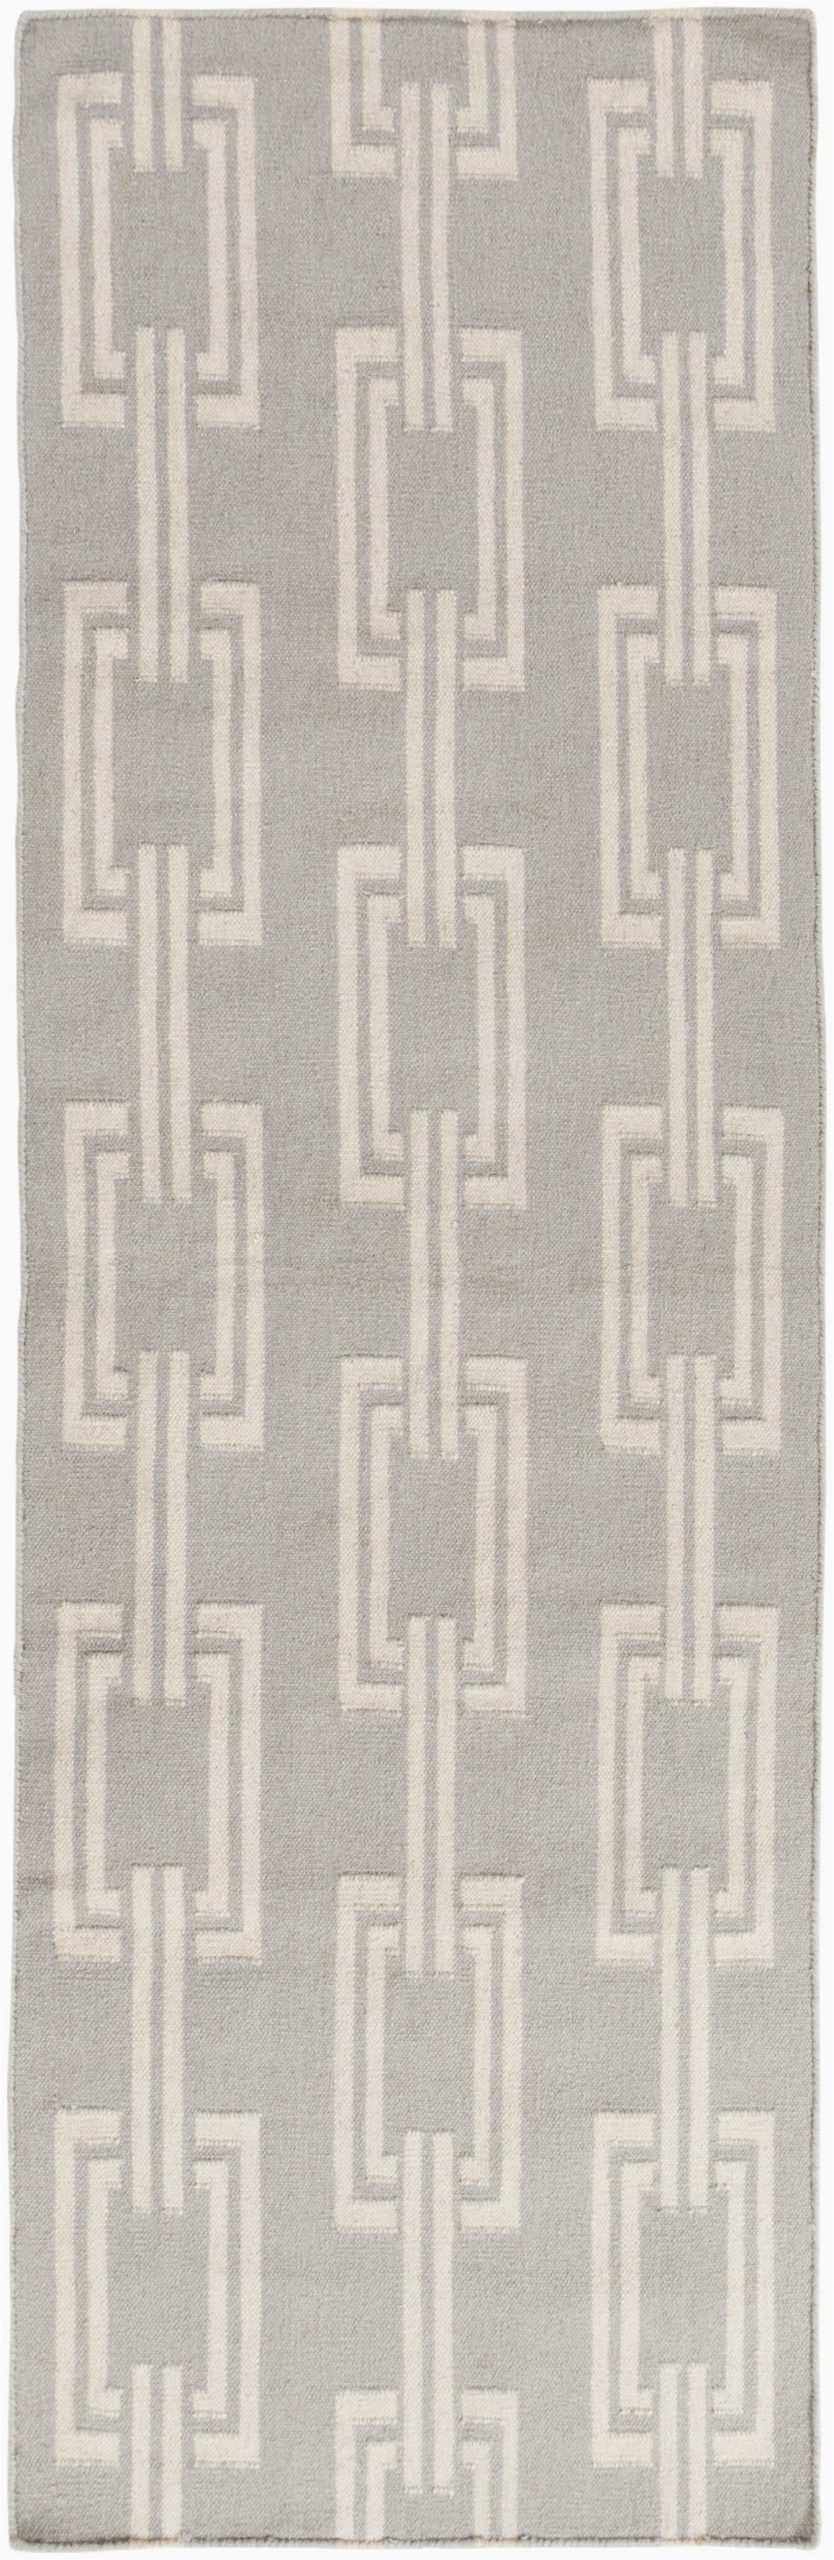 boardwalk geometric handwoven flatweave gray area rug